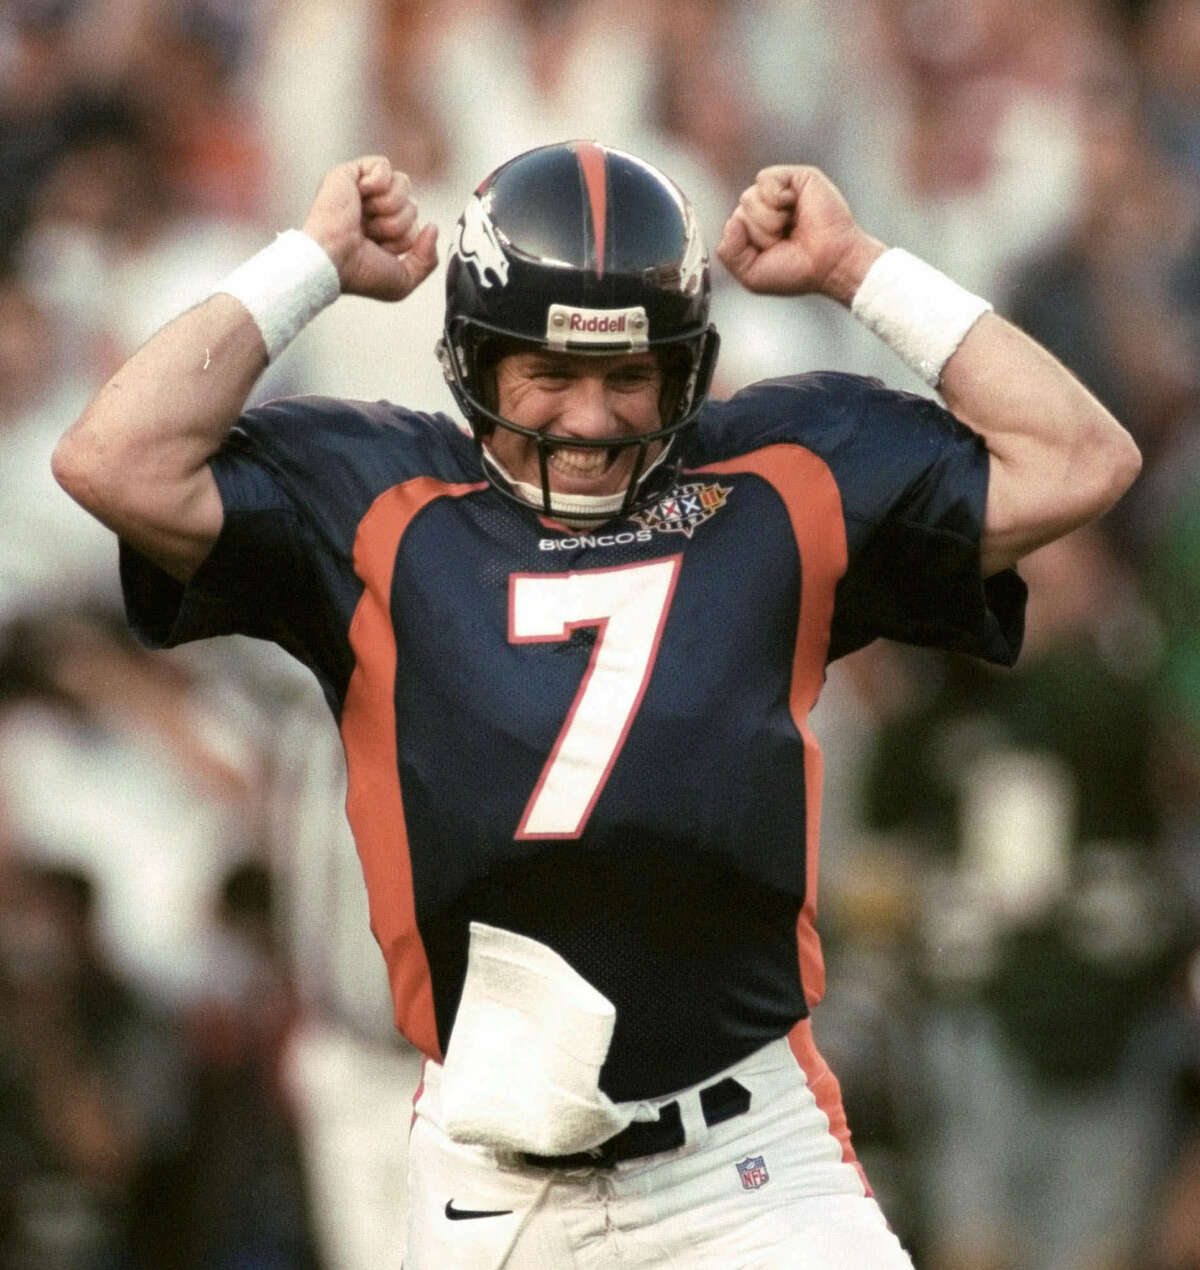 Denver Broncos quarterback John Elway celebrates after a touchdown against the Green Bay Packers during the first quarter of Super Bowl XXXII at San Diego's Qualcomm Stadium Sunday, Jan. 25, 1998. (AP Photo/Boulder Daily Camera, Cliff Grassmick)